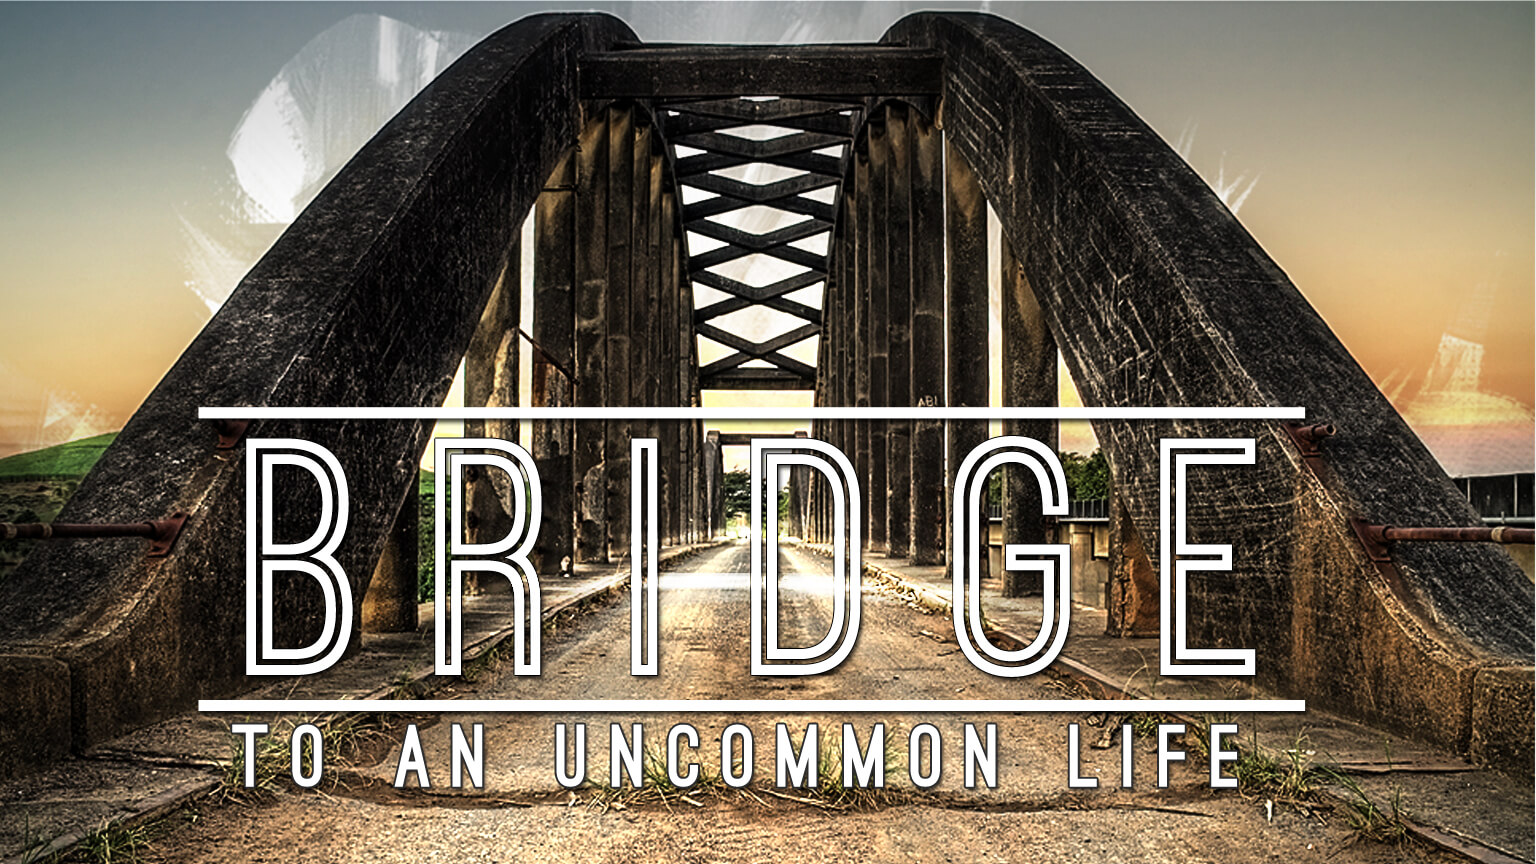 Bridge to an Uncommon Life